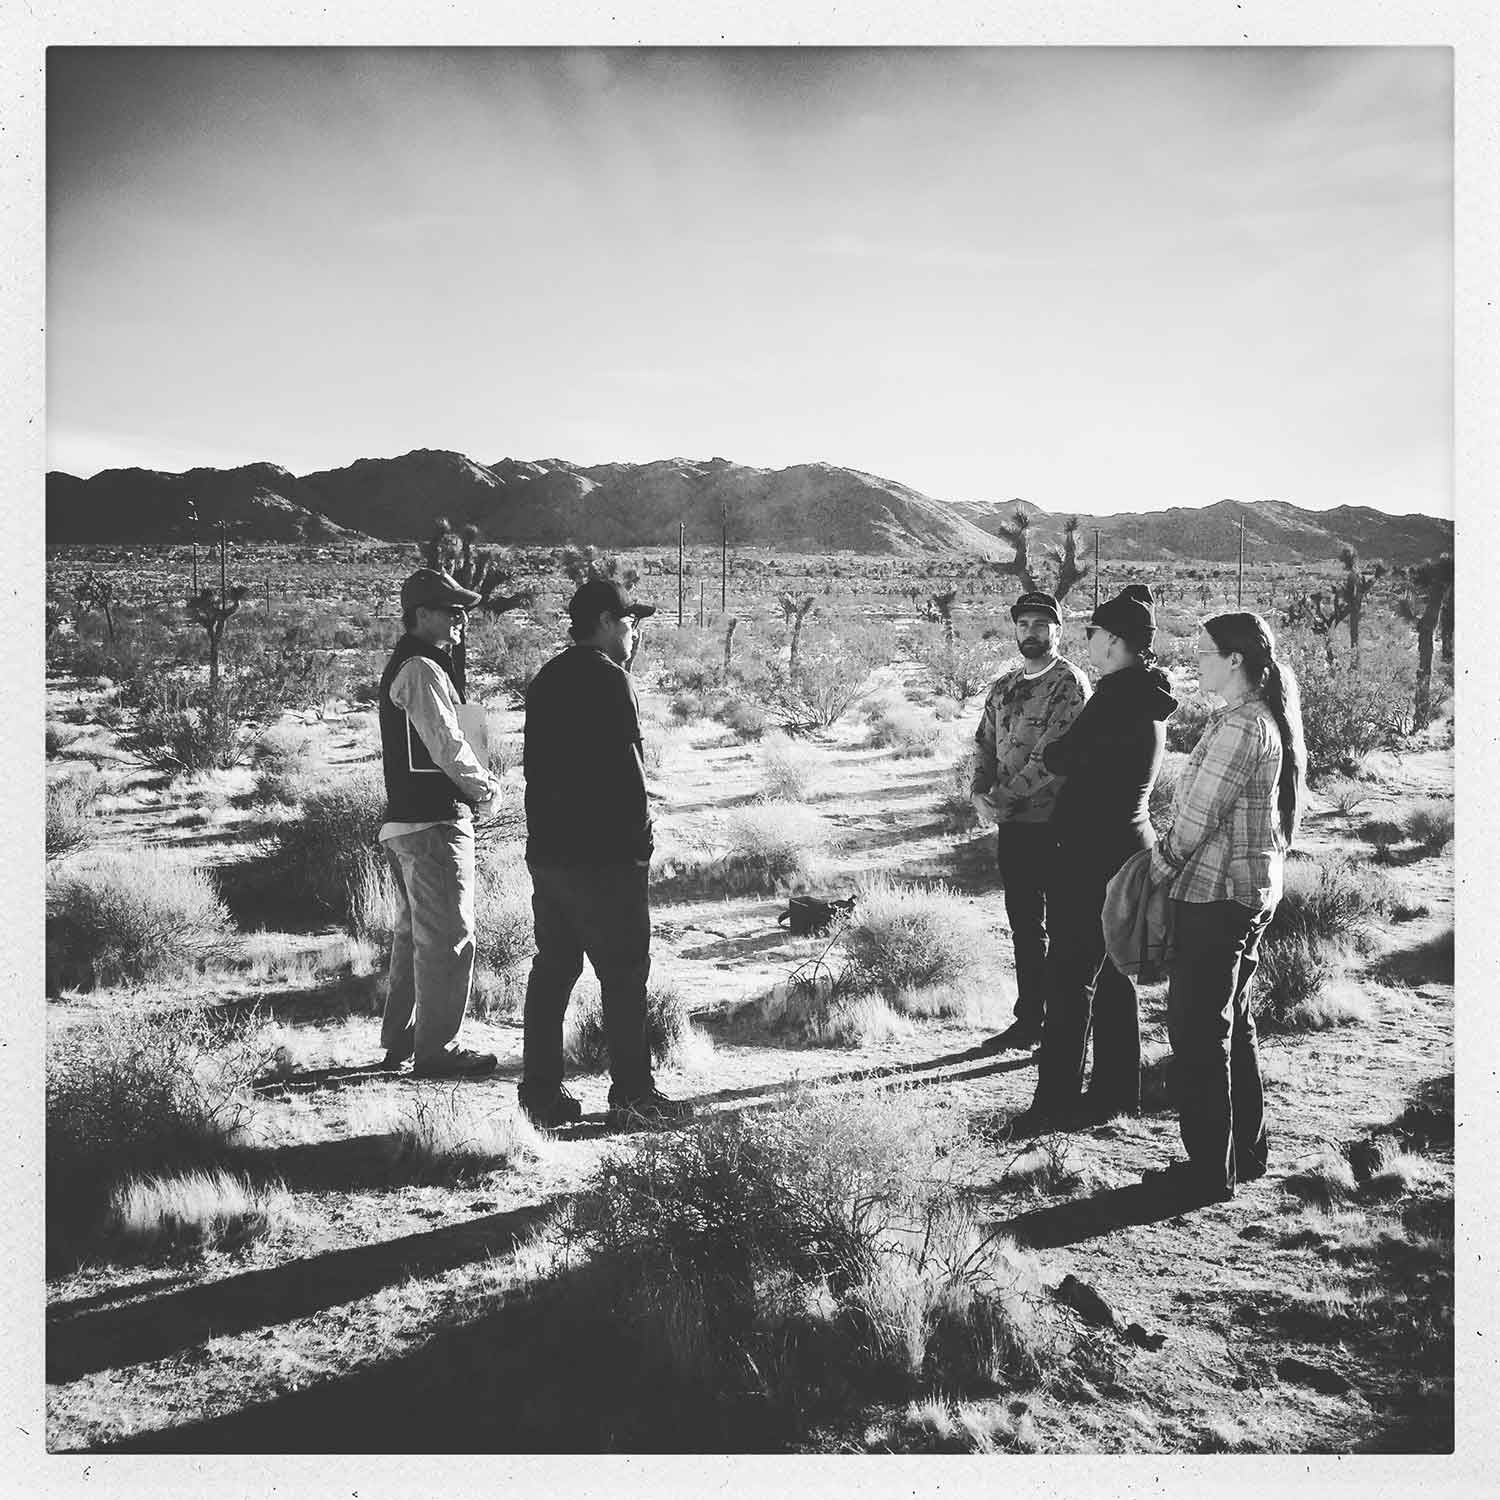 Rough Play Projects Artist Site Meeting with Mojave Desert Land Trust - Reading the Landscape Technician, 2018